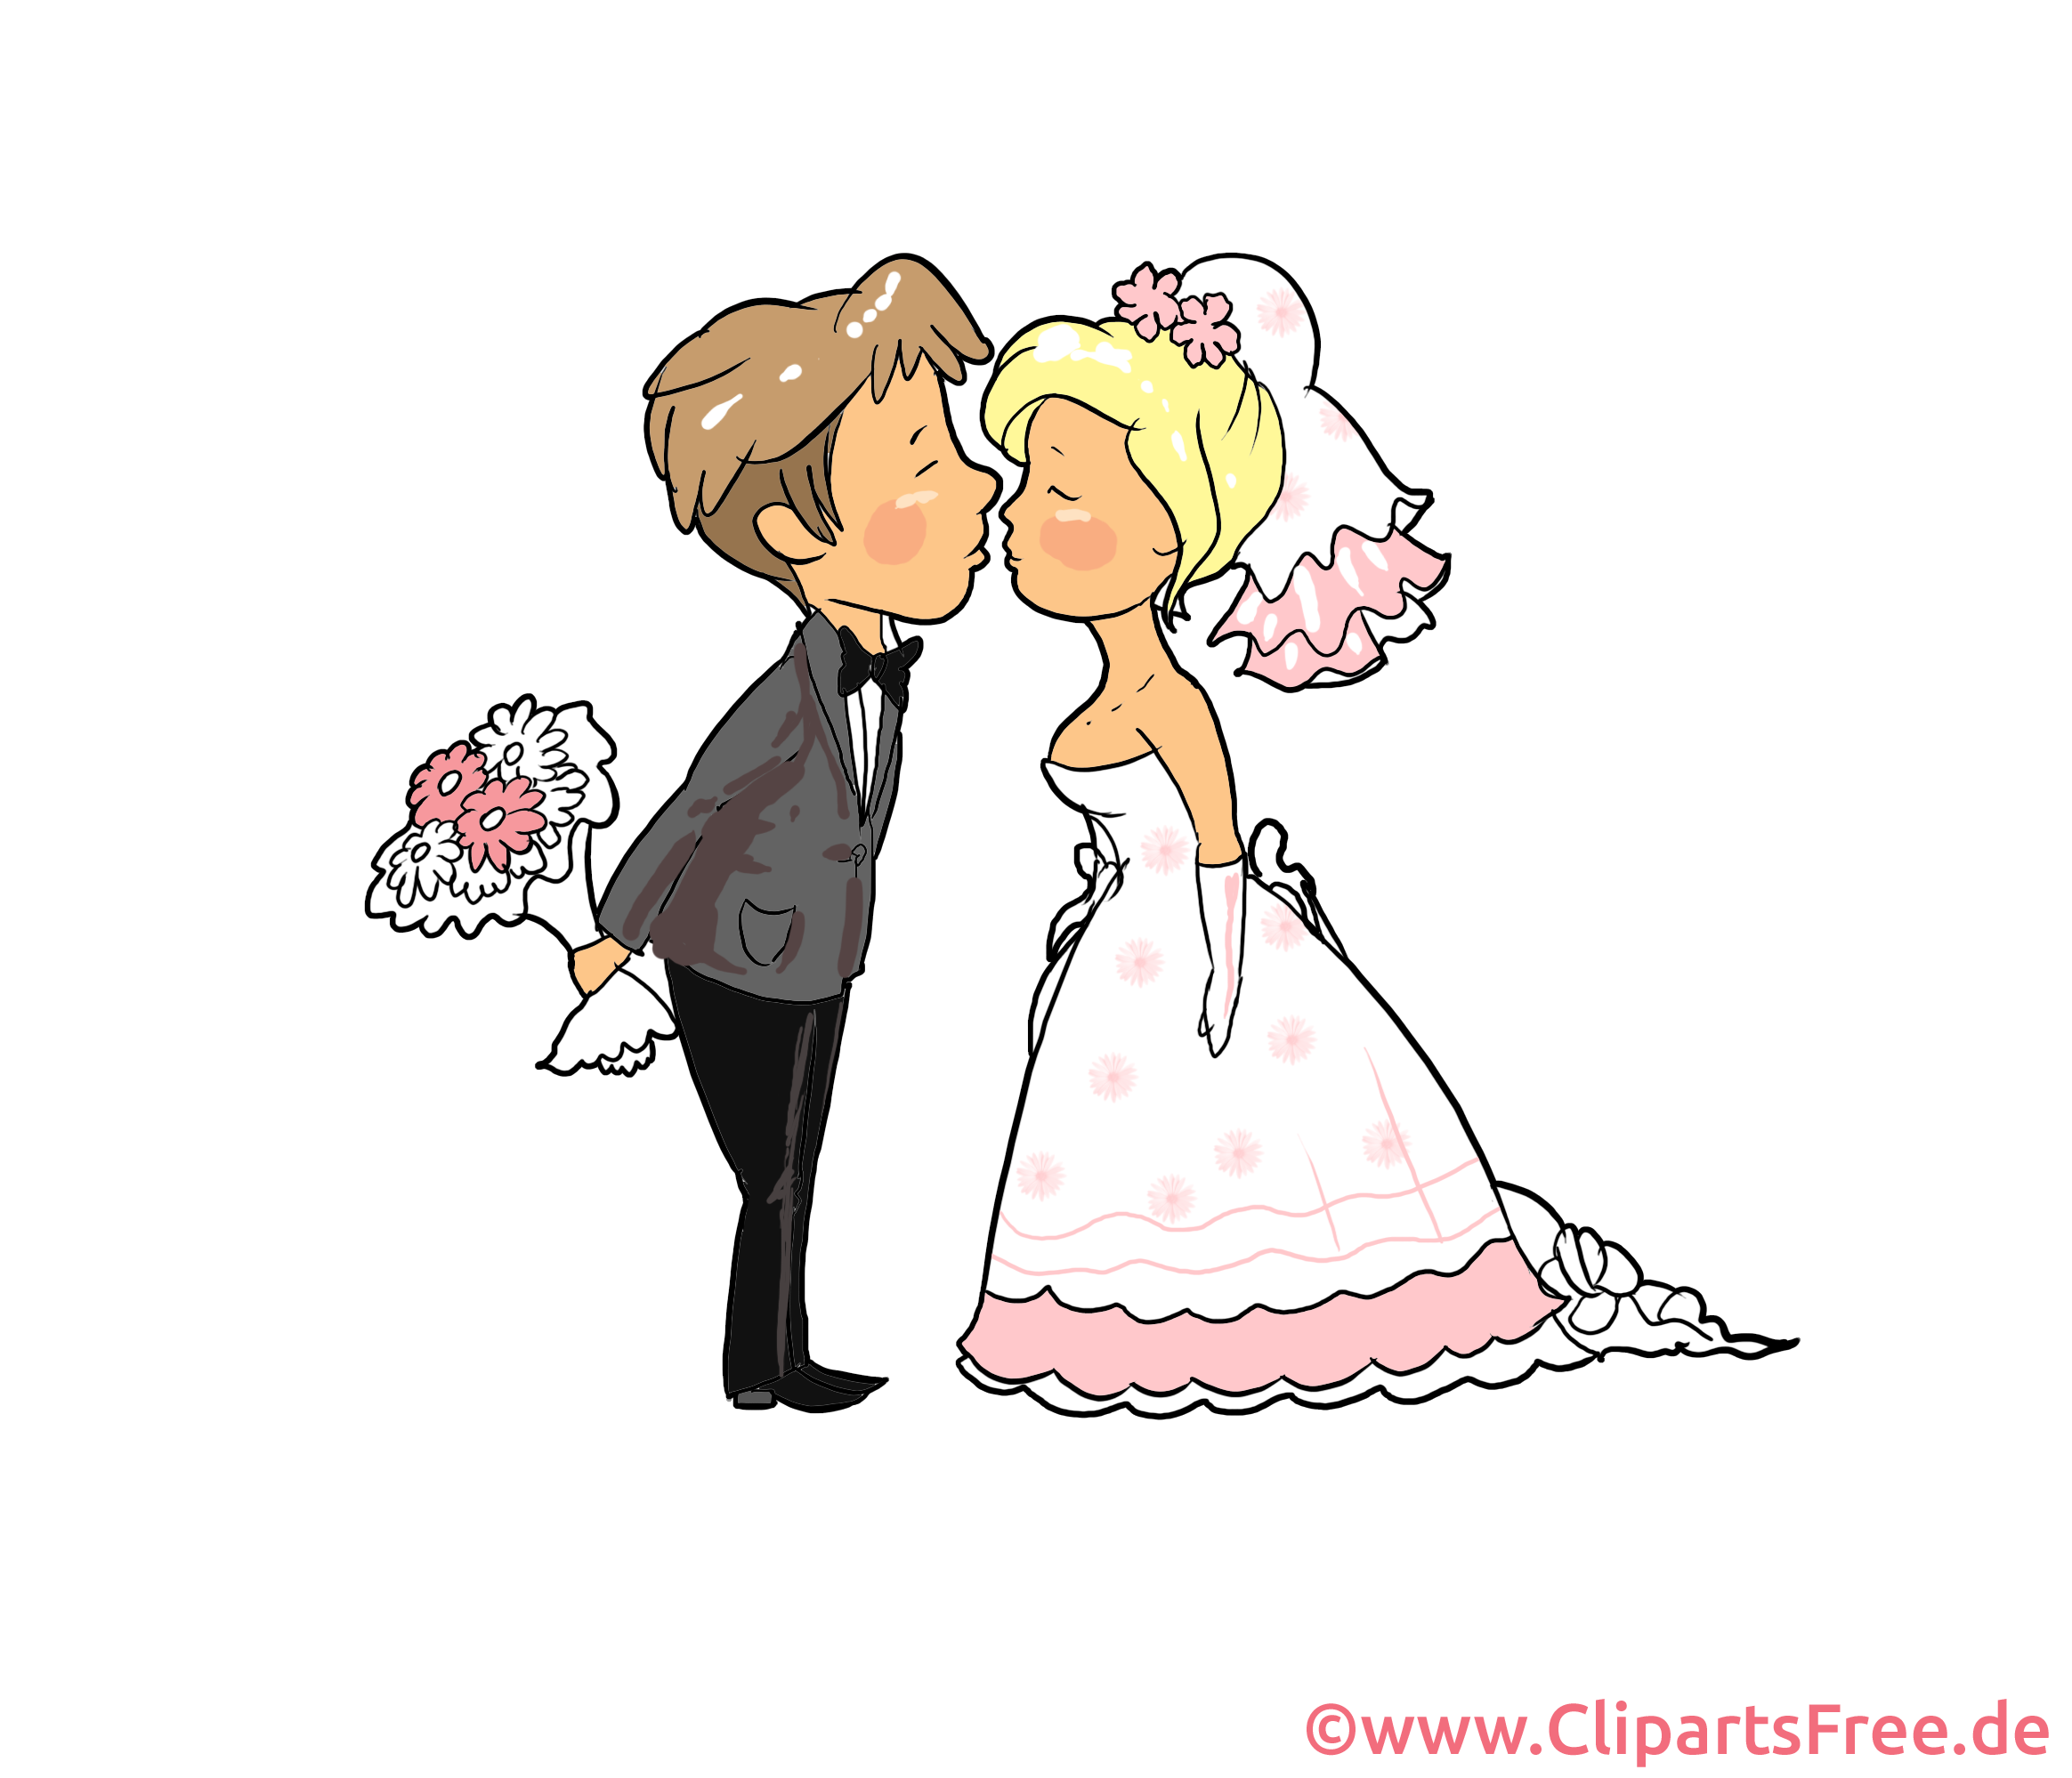 Mariage clipart #8, Download drawings